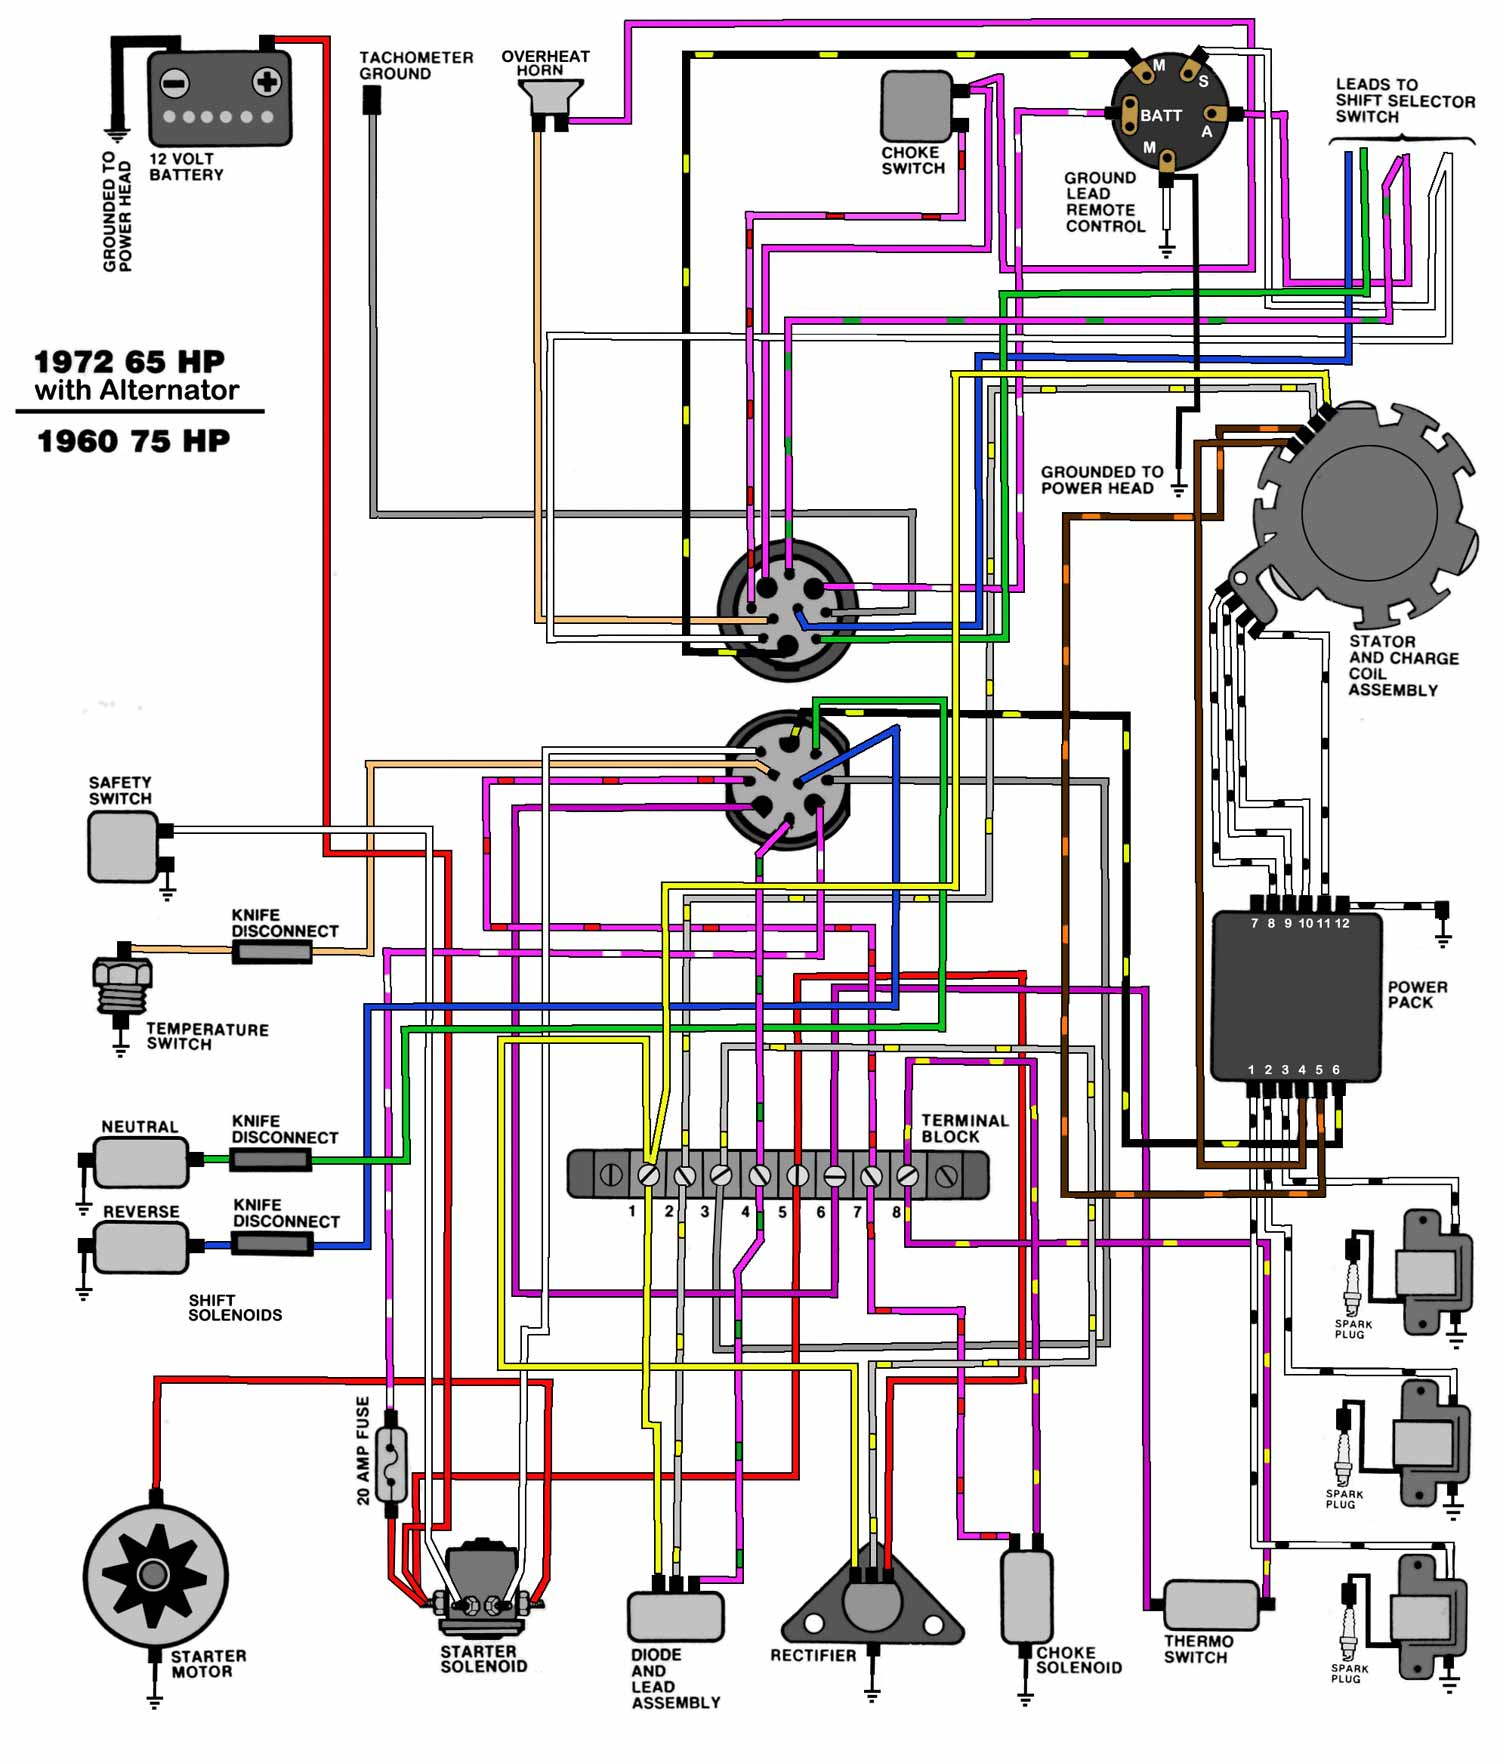 evinrude 70 wiring diagram 2005 ford focus zx4 stereo 85 hp outboard engine get free image